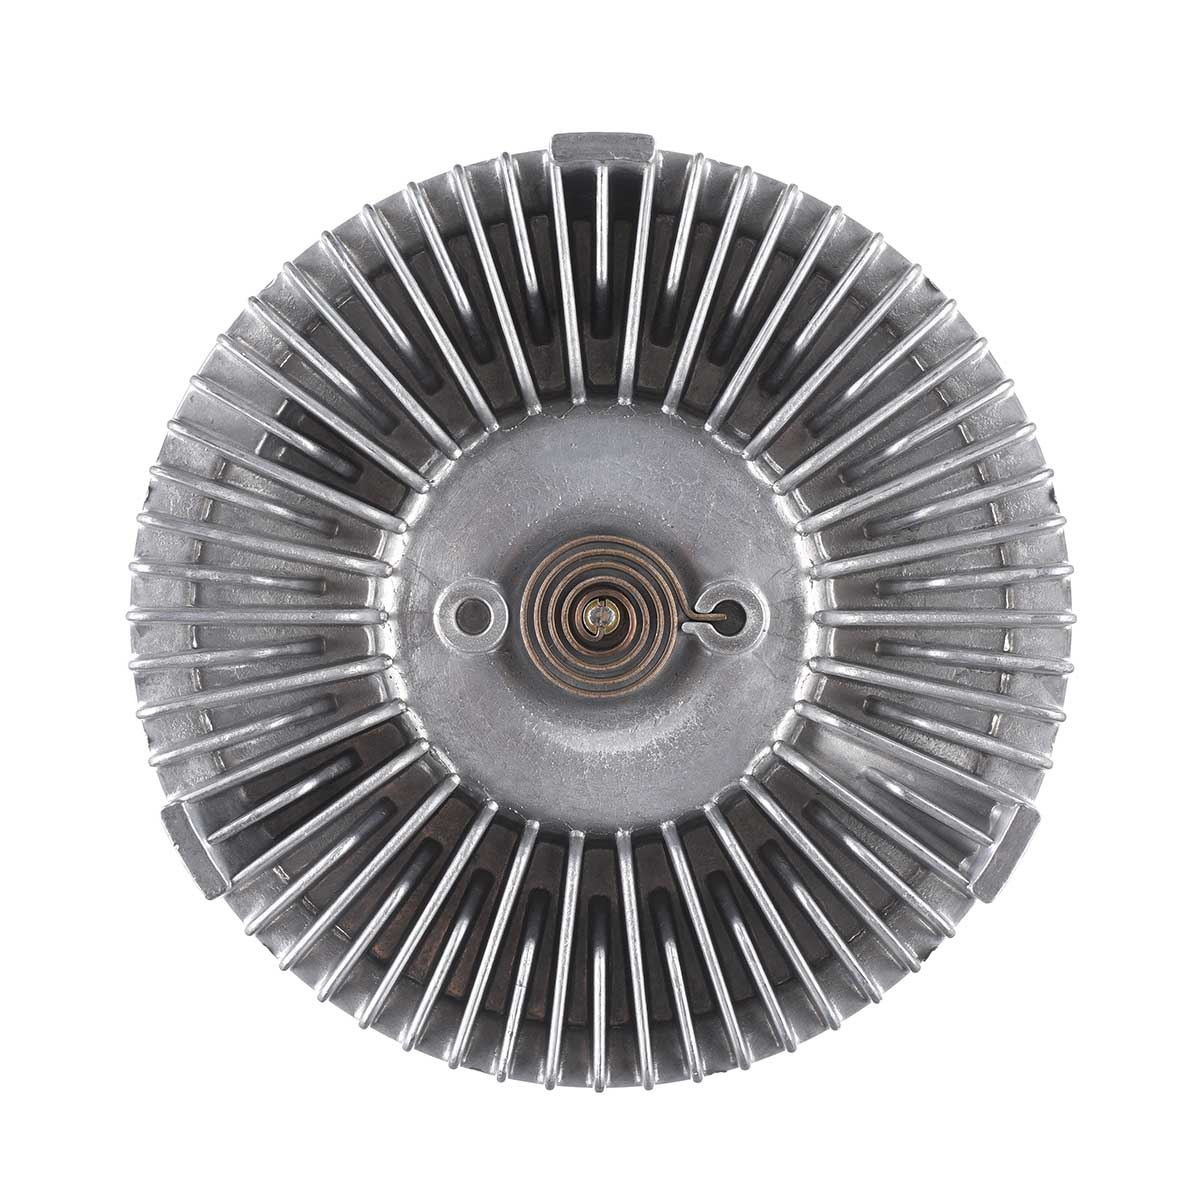 hight resolution of cooling fan clutch for ford explorer sport trac mercury mountaineer 2001 2005 lincoln aviator 4 0l 4 6l ccw 4l2z8a616aa 2776 in fans kits from automobiles